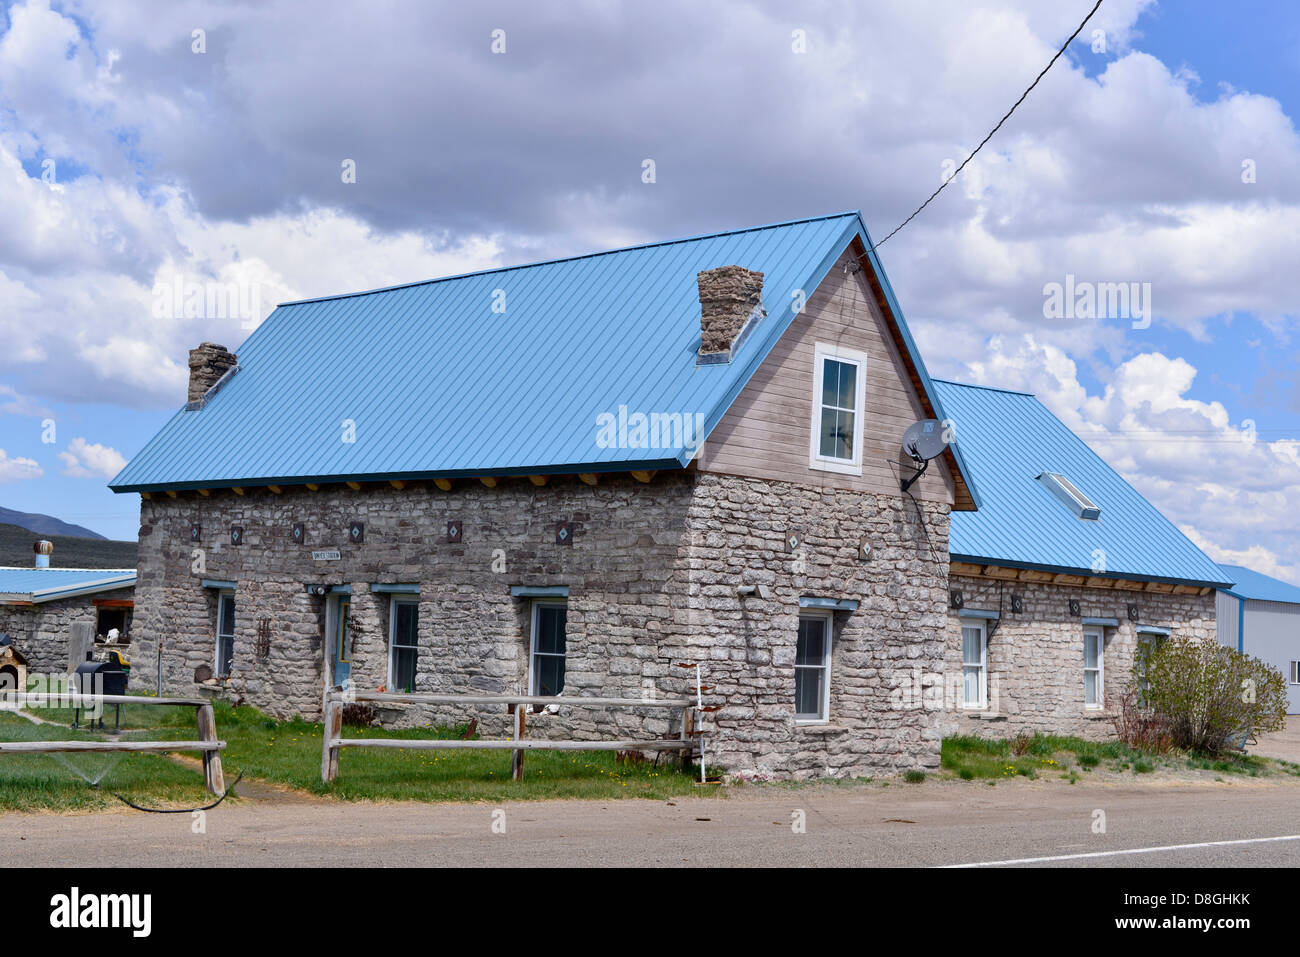 Old stone building that was once a stage stop in Dinner Station, Nevada. - Stock Image